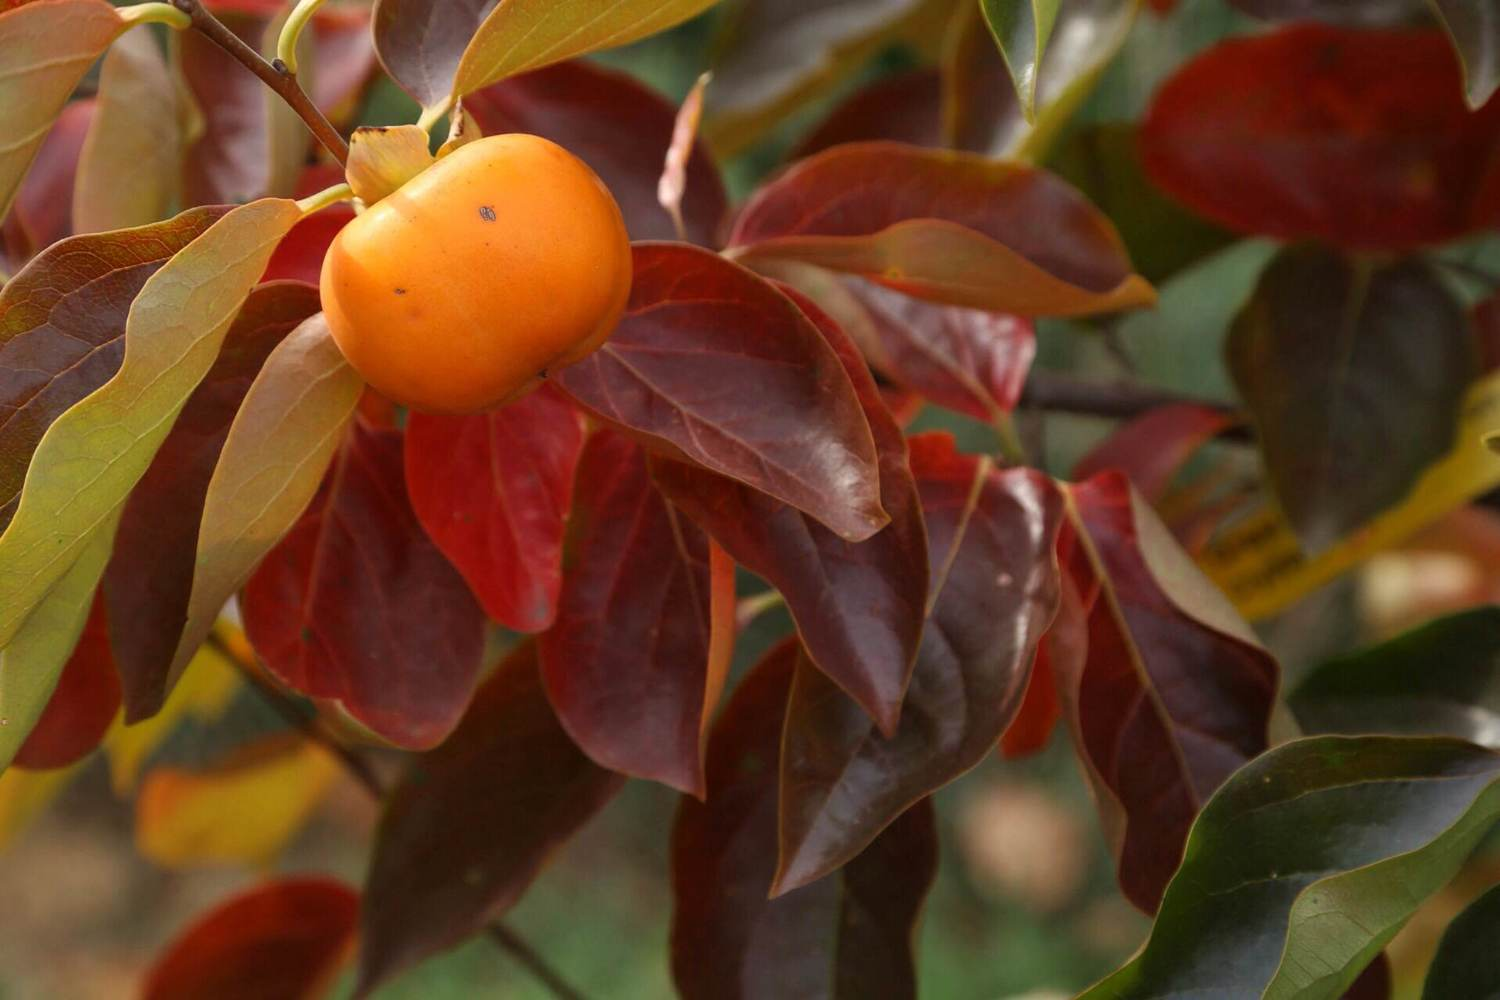 persimmon_foliage_w_fruit.jpg